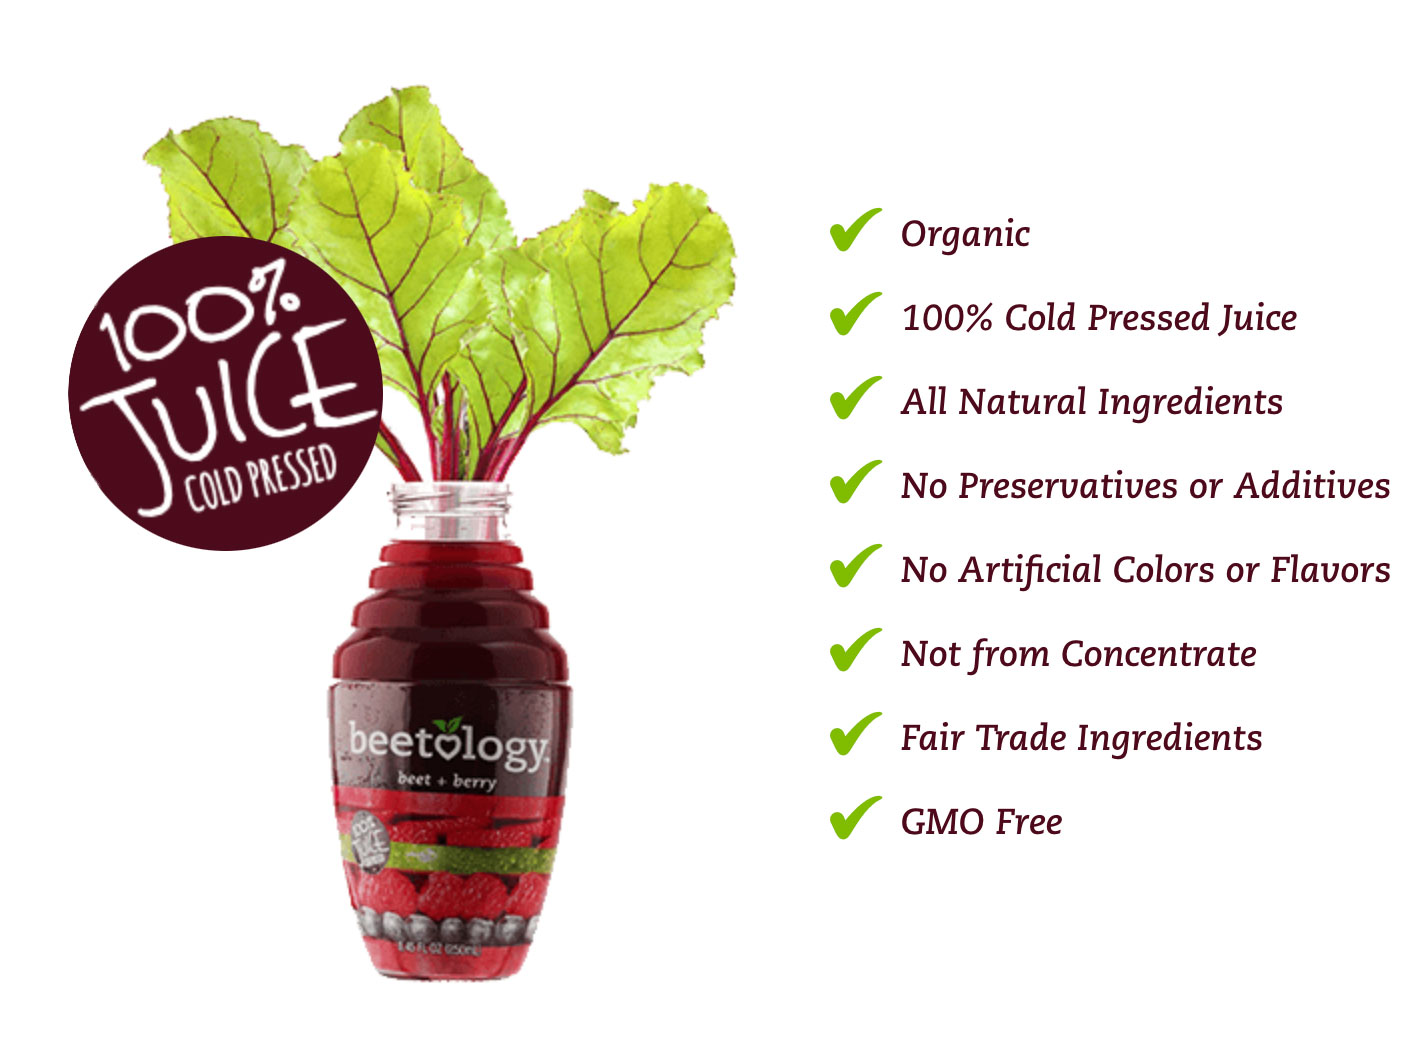 Beetology has created a delicious way to drink your beets for optimal health benefits